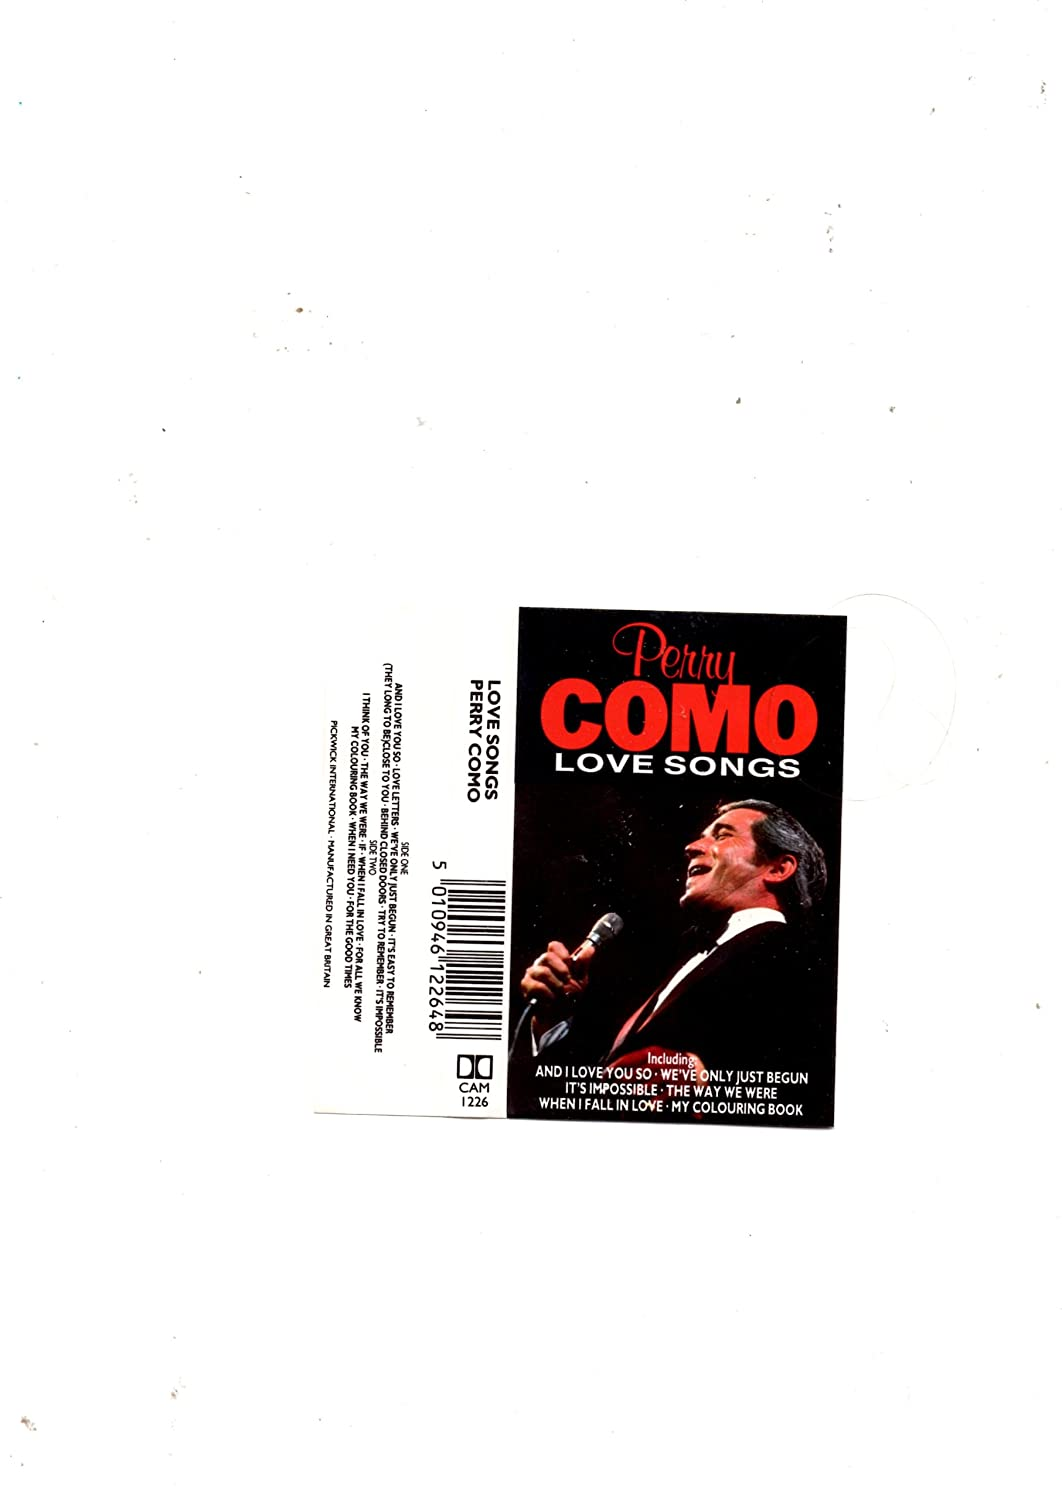 Perry Como - Love Songs - Amazon.com Music